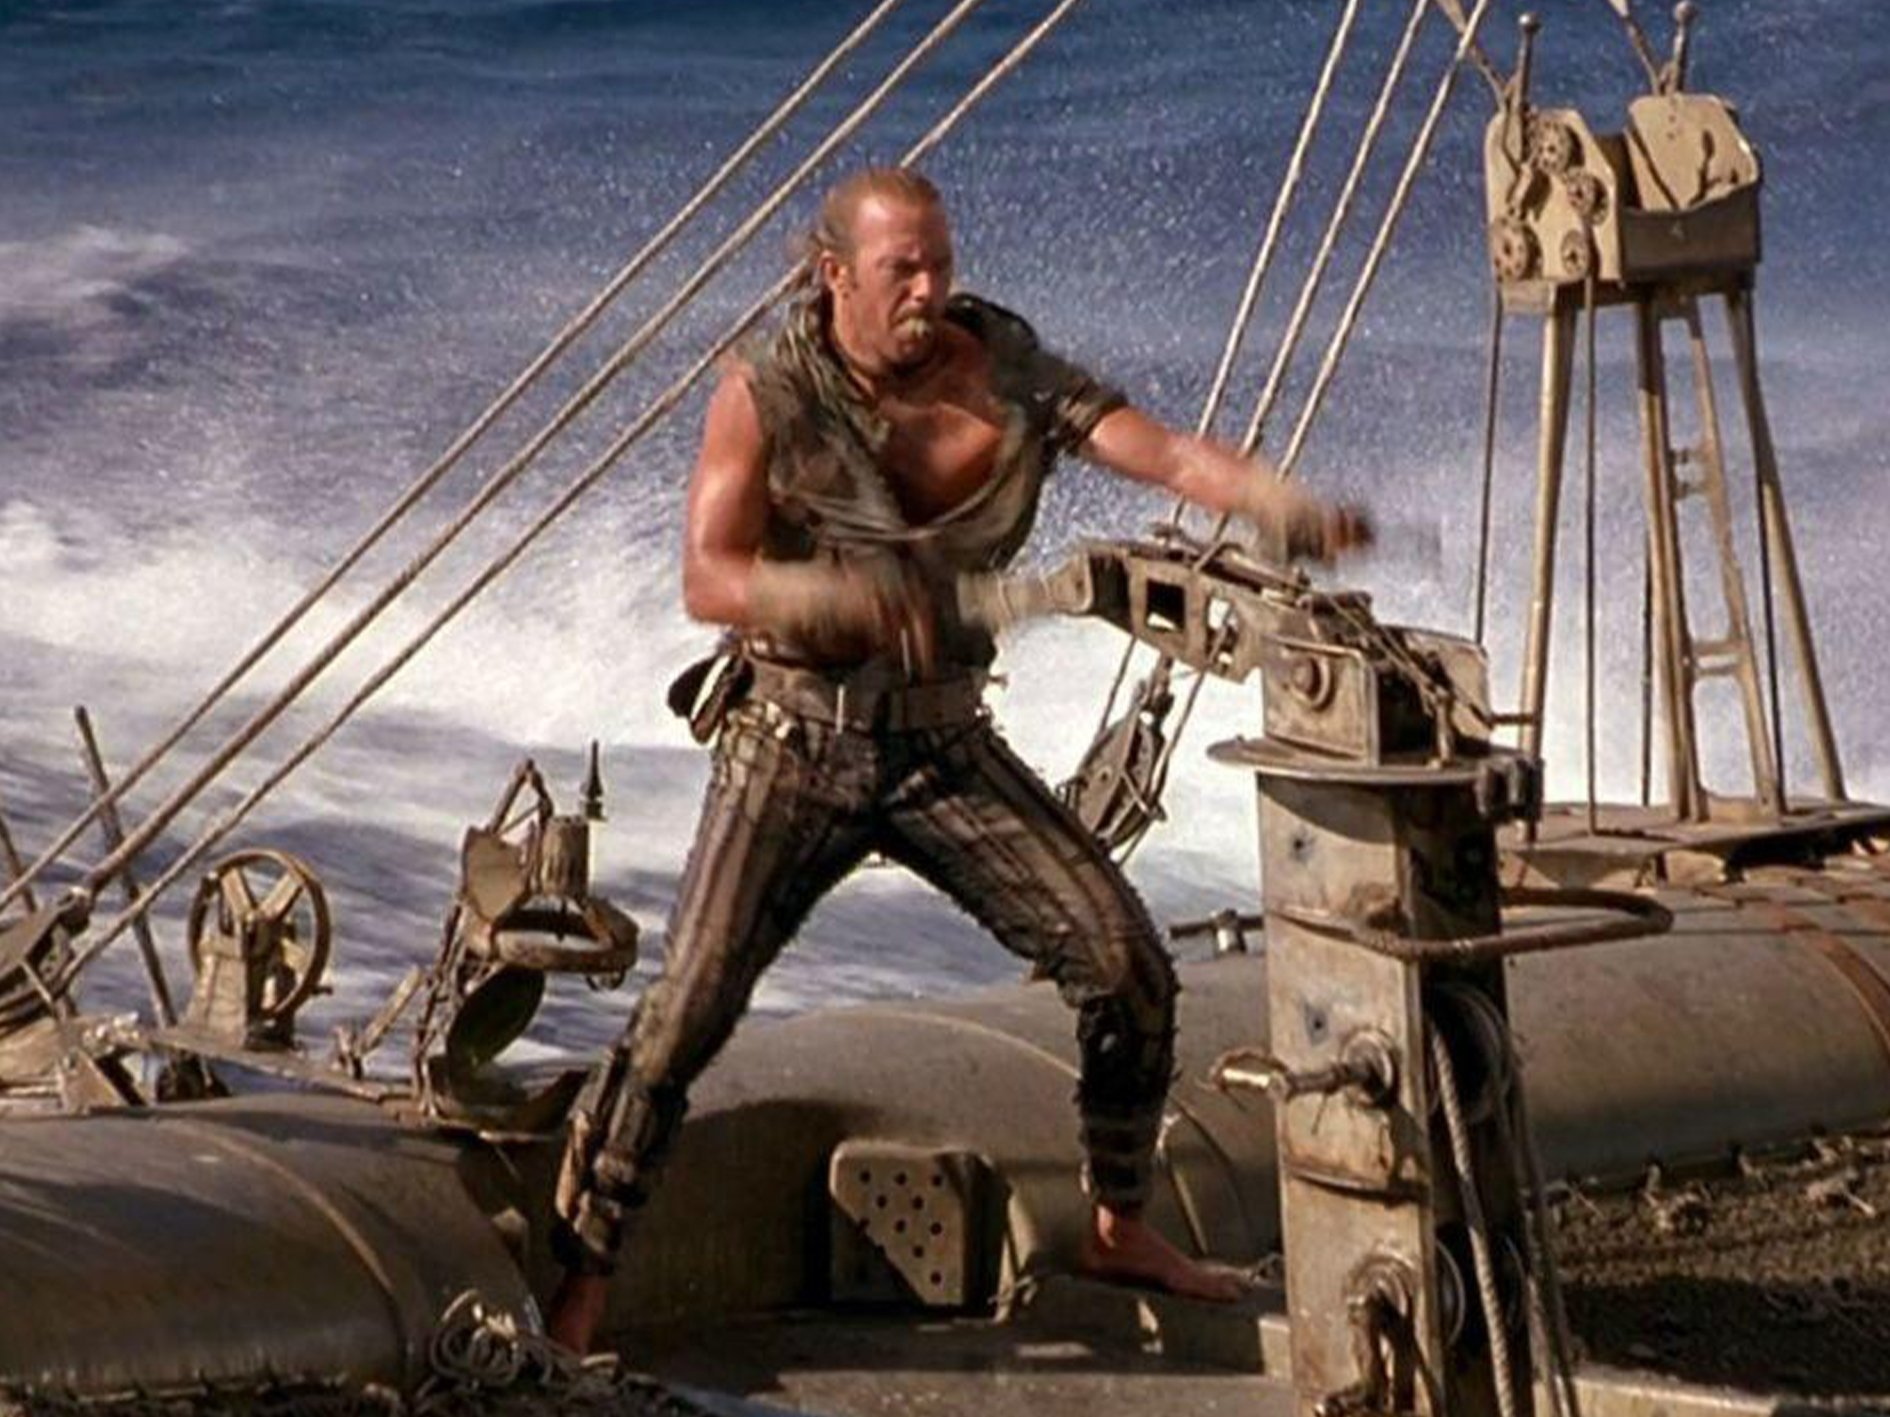 Waterworld 1 Waterworld: The Story Behind One Of The Biggest Hollywood Disasters Of All Time